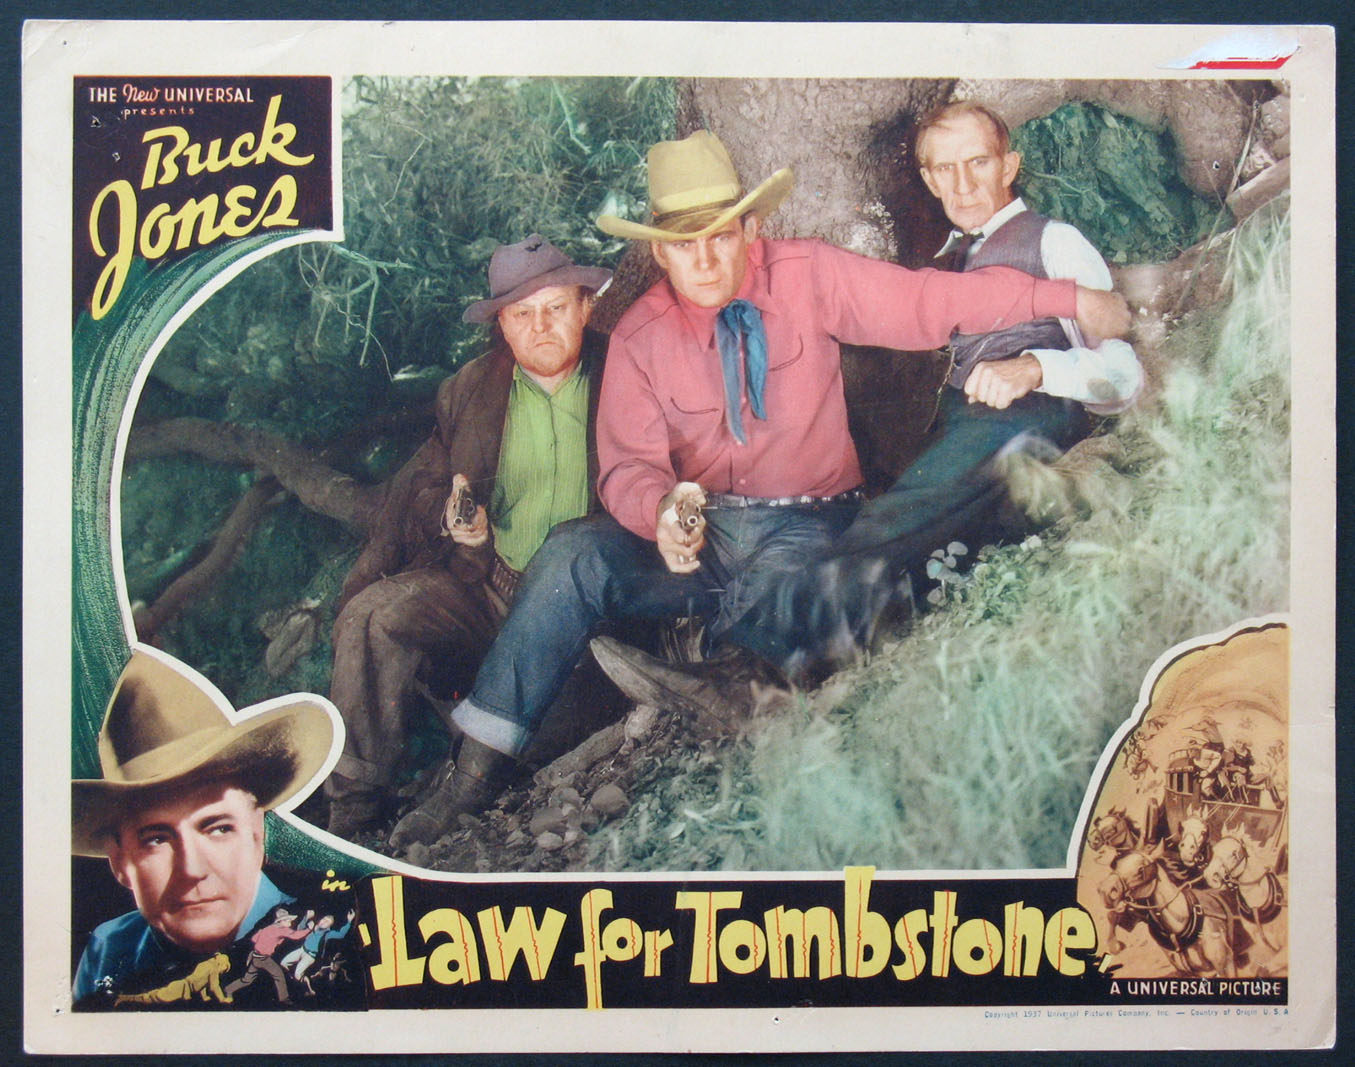 LAW FOR TOMBSTONE @ FilmPosters.com